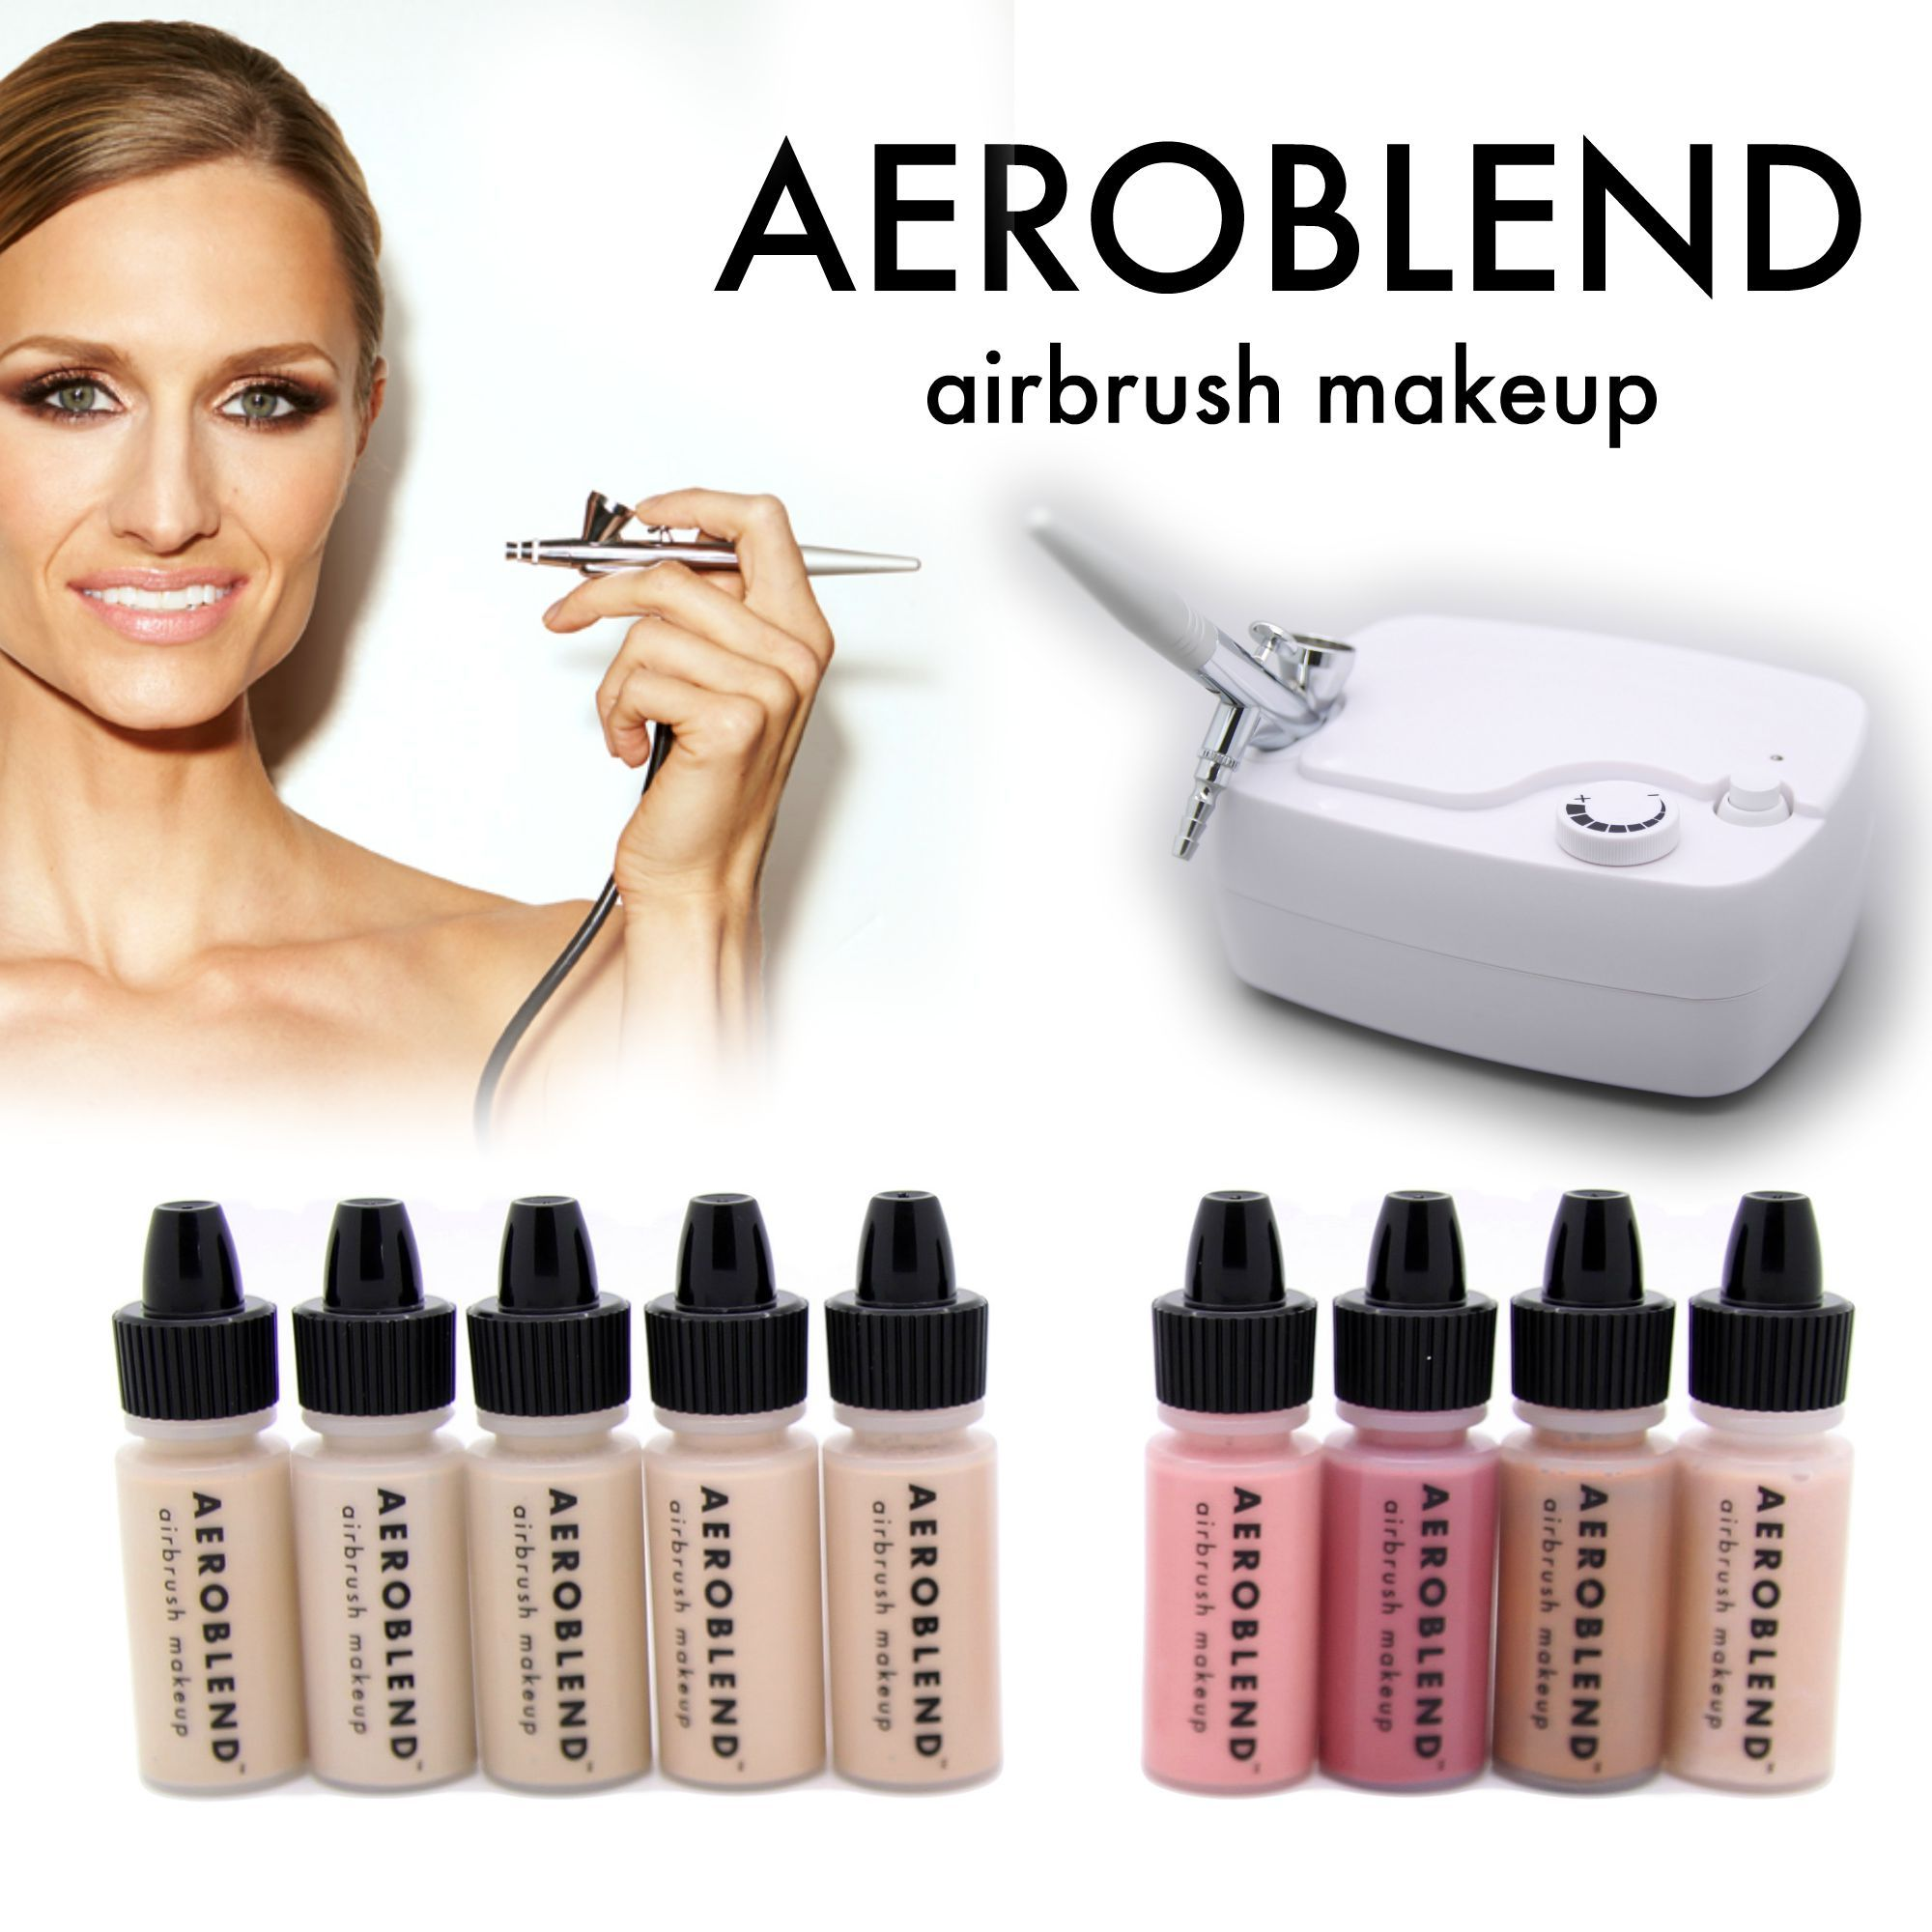 Fast, flawless, easy! Aeroblend airbrush Personal Starter